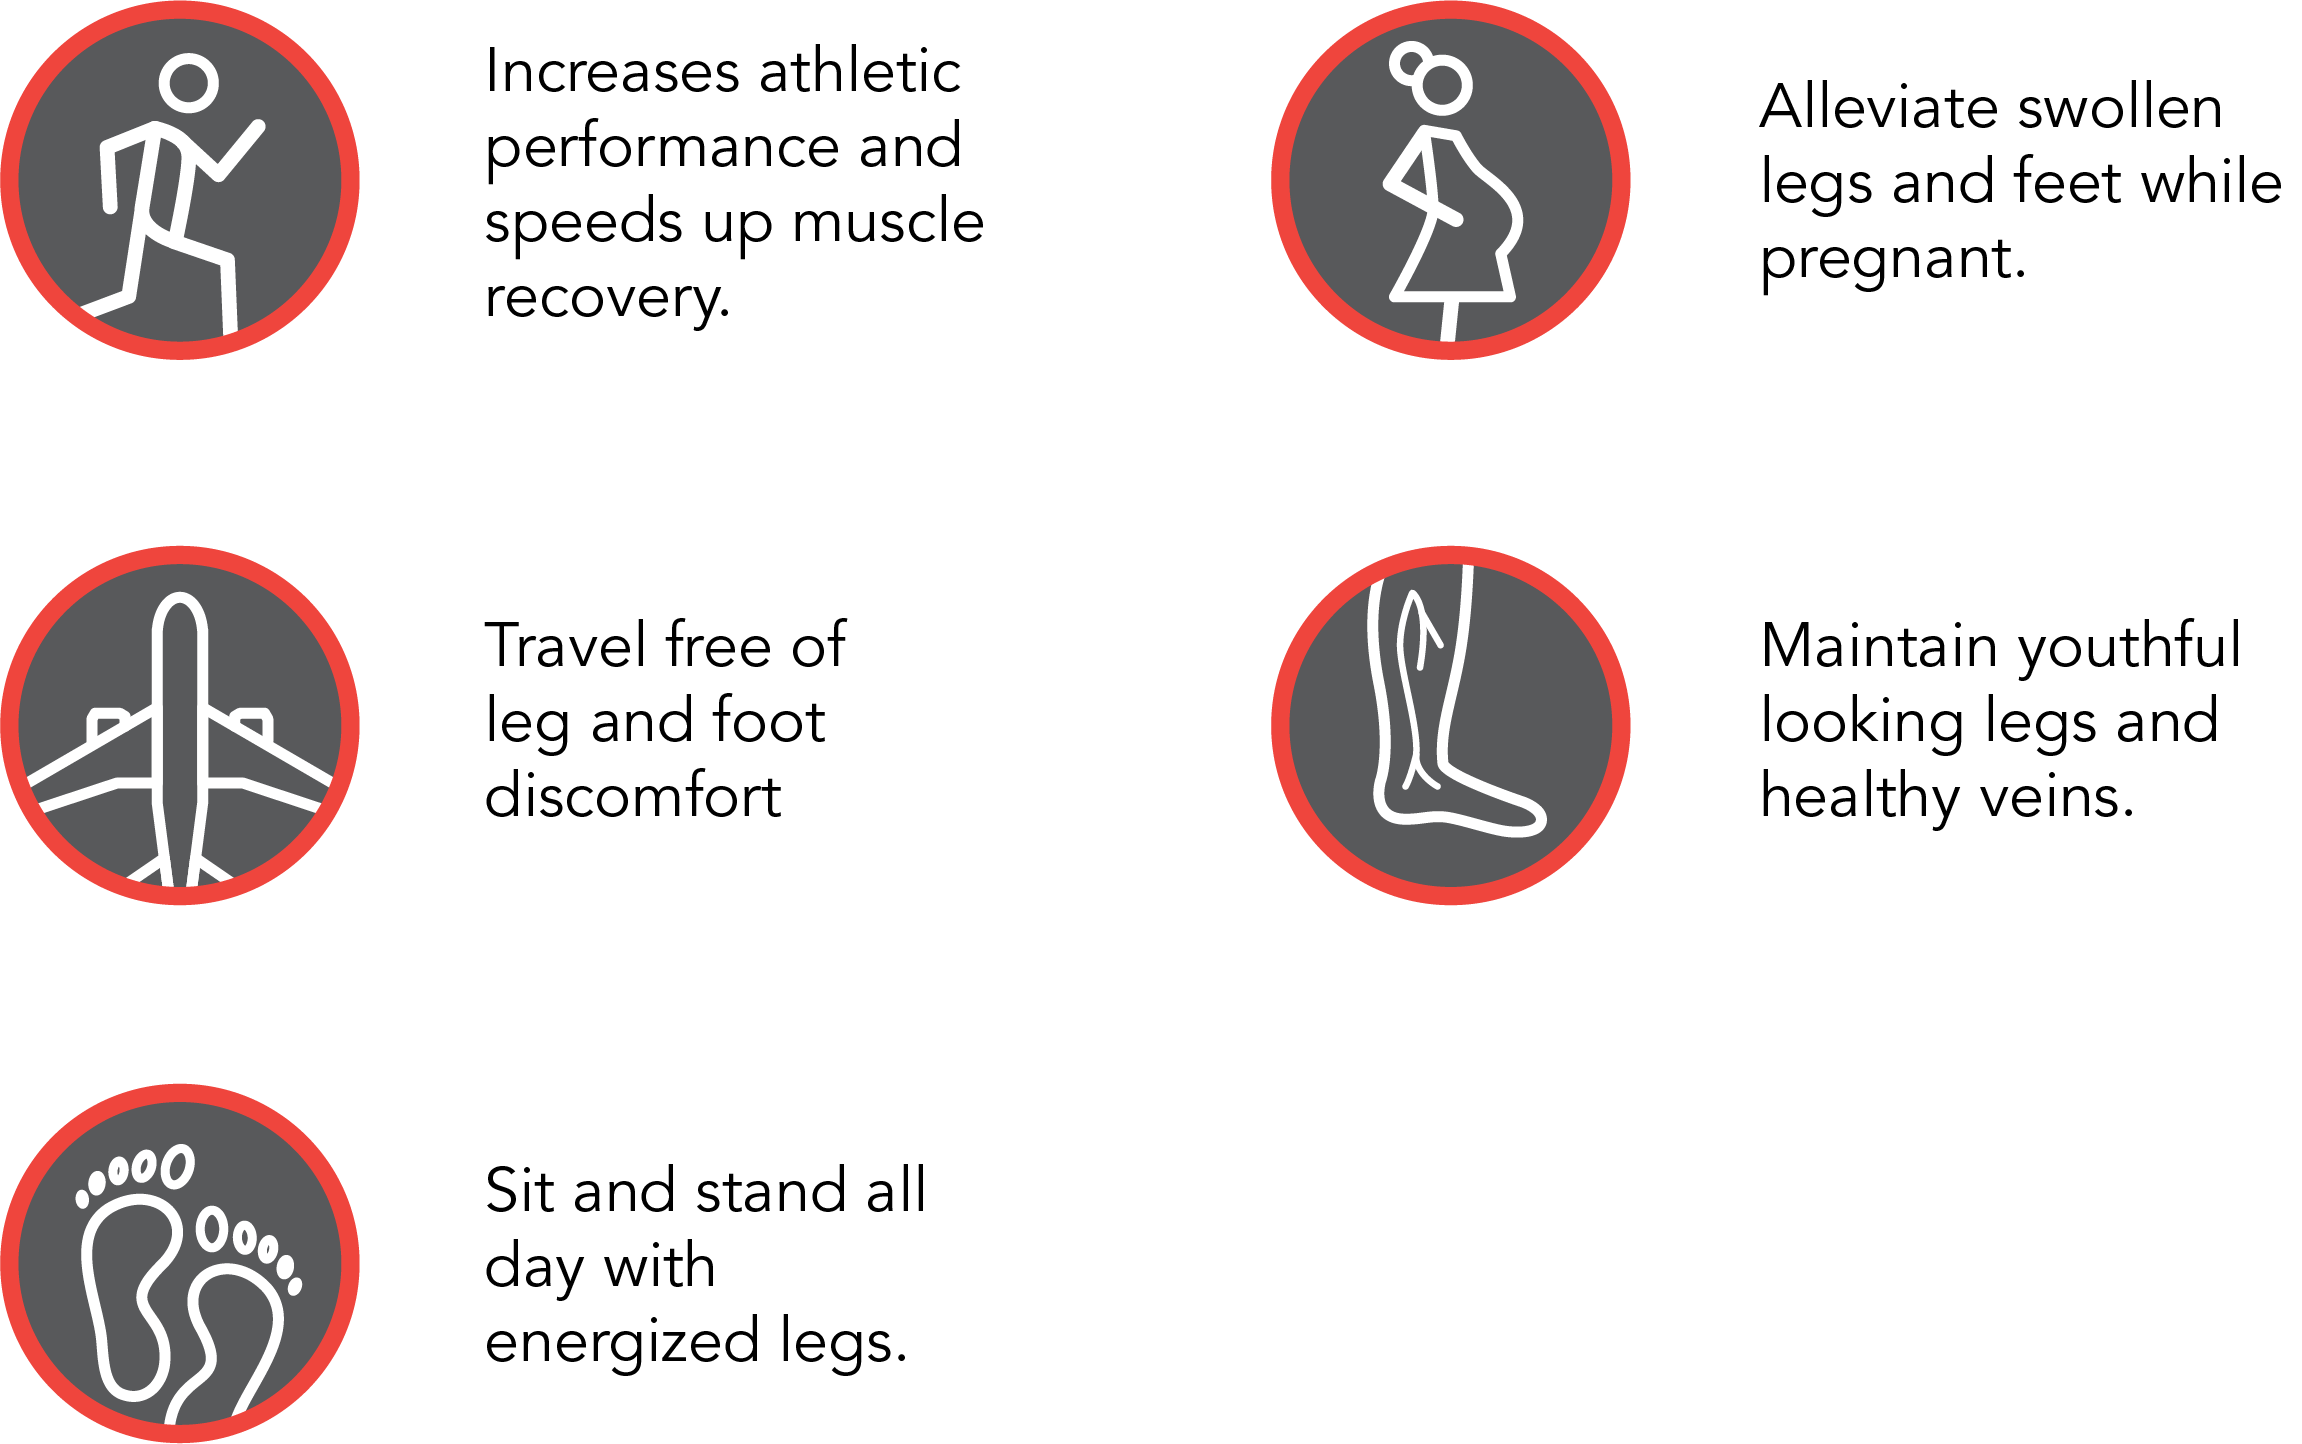 Our socks increase athletic performance and speed up muscle recovery; allow travel free of leg and foot discomfort; allow Sit and stand all day with energized legs; alleviate swollen legs and feet while pregnant; and maintain youthful looking legs and healthy veins.